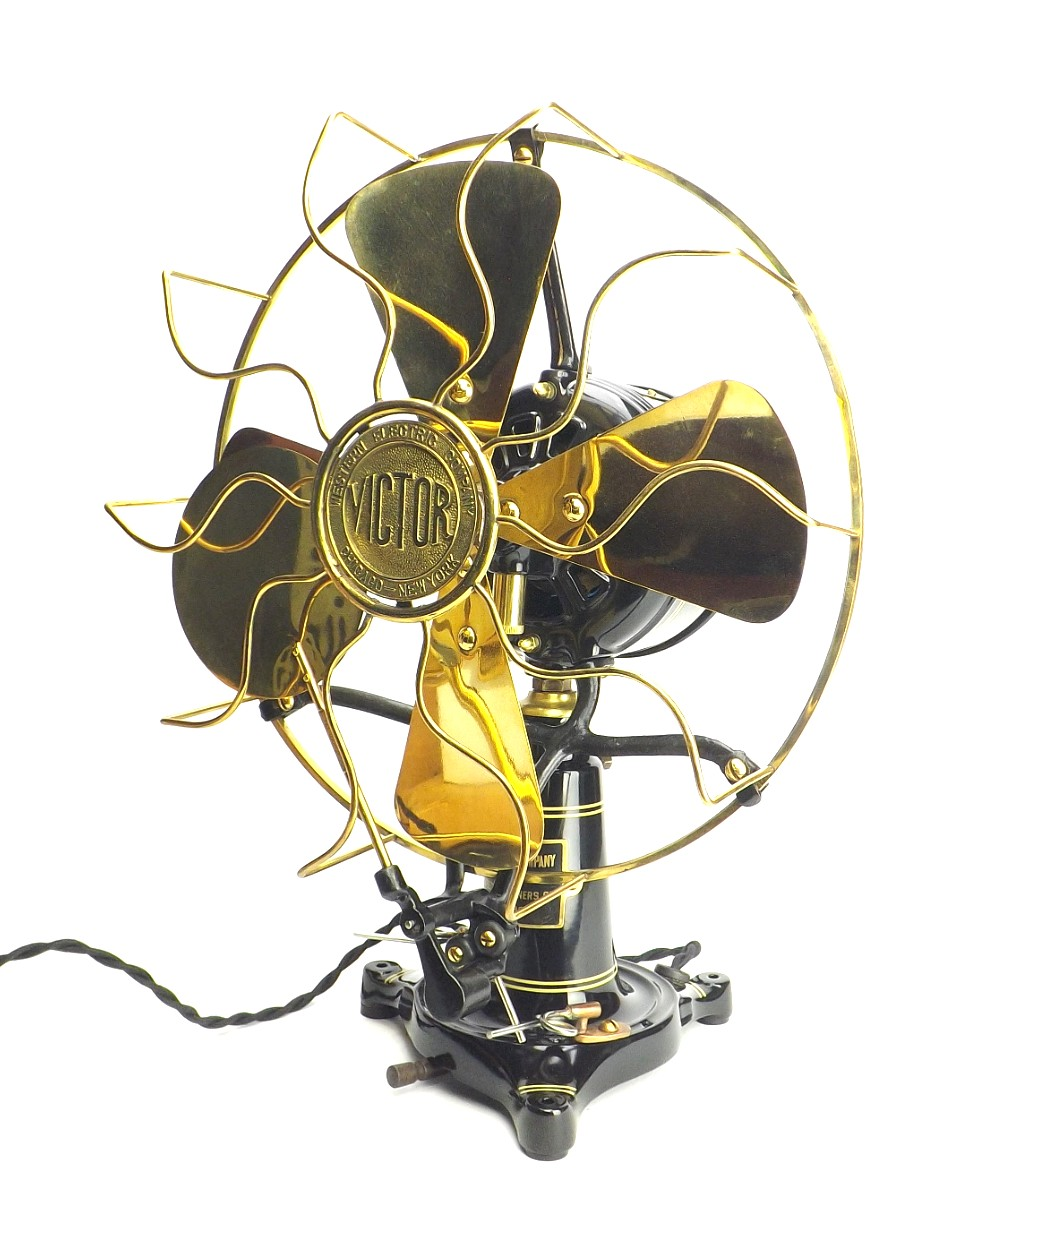 "Restored 12"" Western Electric Victor Lollipop Oscillating Desk Fan"